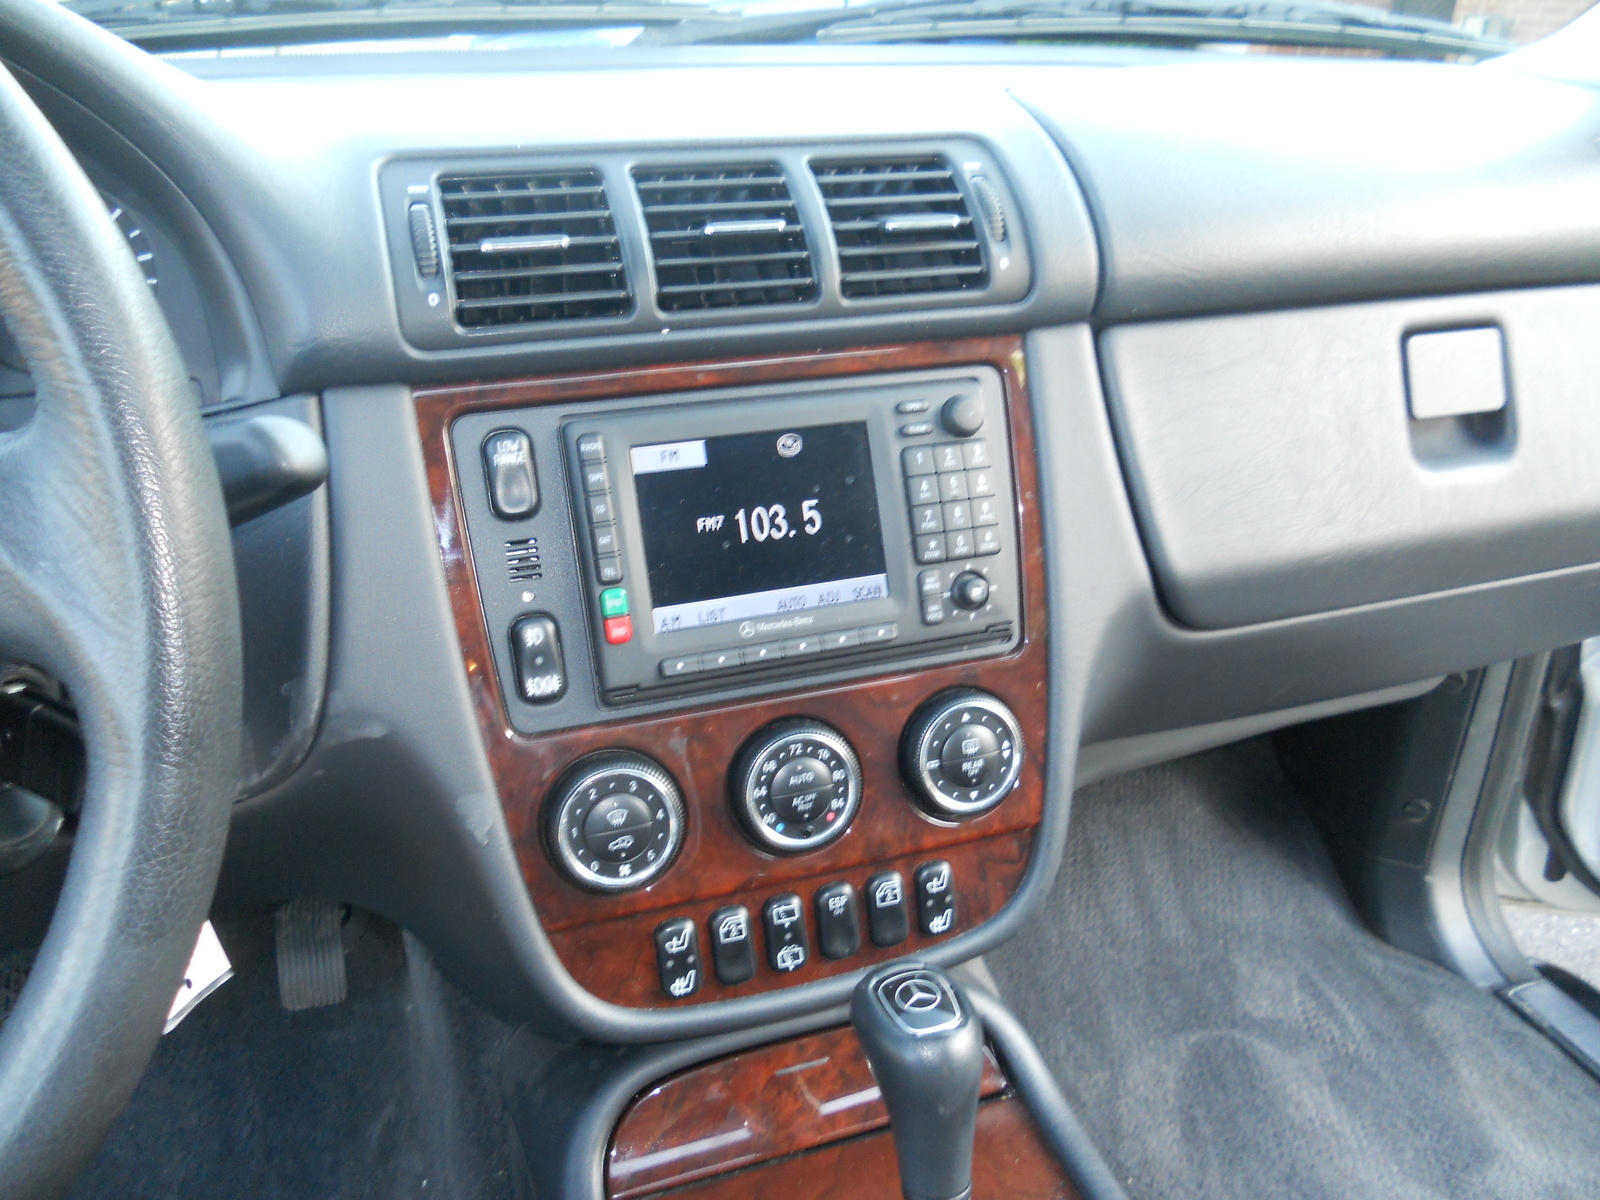 Picture of 2003 mercedes benz m class ml350 interior for 2003 mercedes benz ml 350